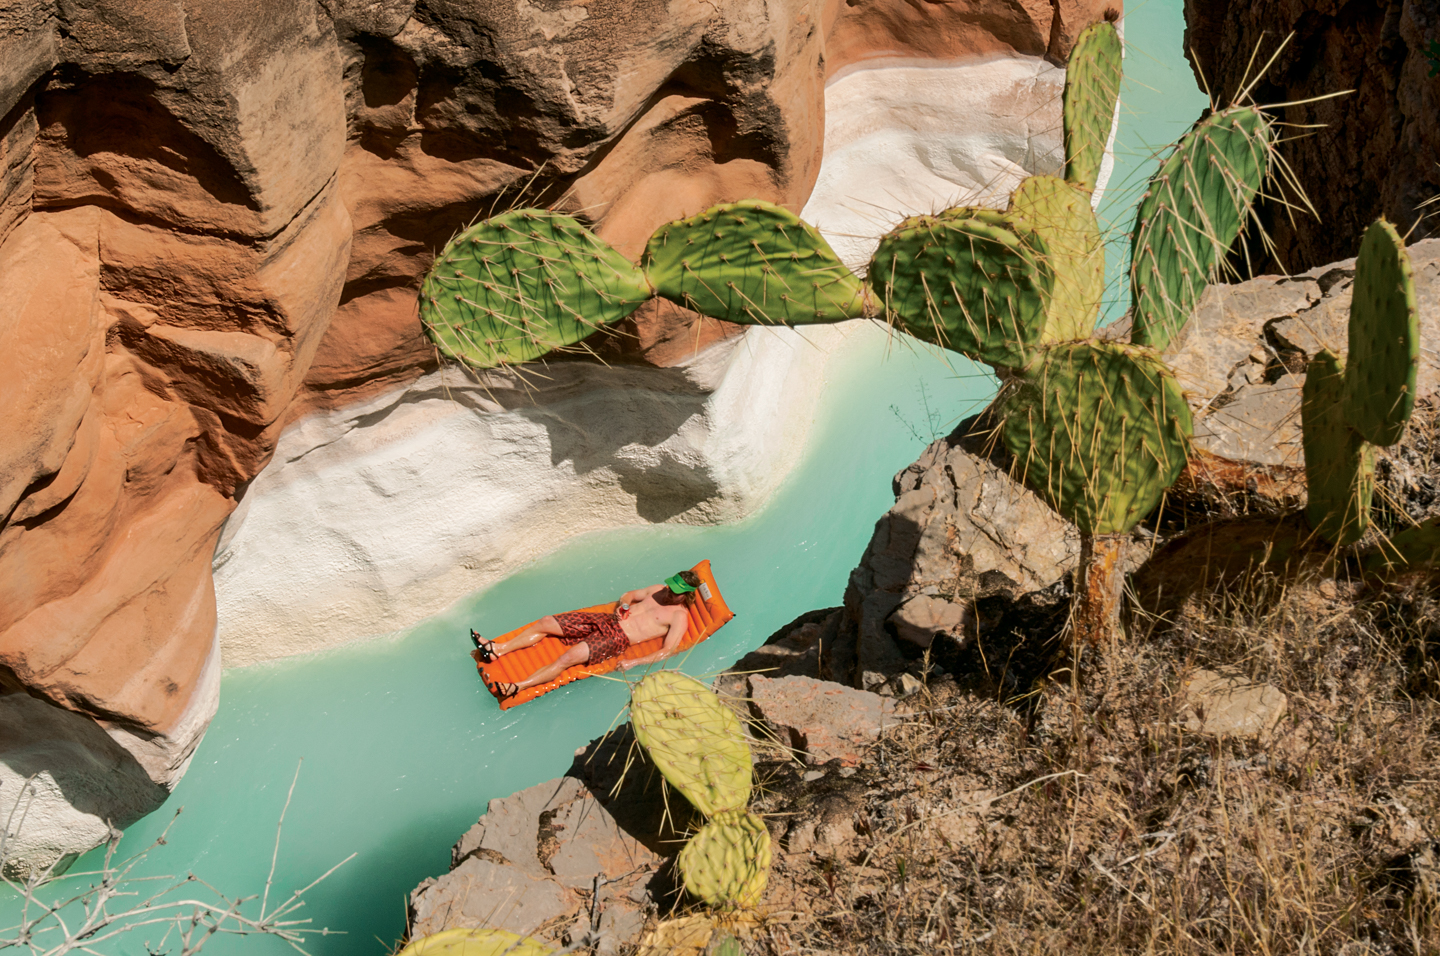 S18_PHOTO RIGHTS EXPIRE July 15, 2018: Braden Gunem floating down Havasu Creek, back to the Colorado River, on a Springtime rafting trip in Grand Canyon National Park, Arizona.